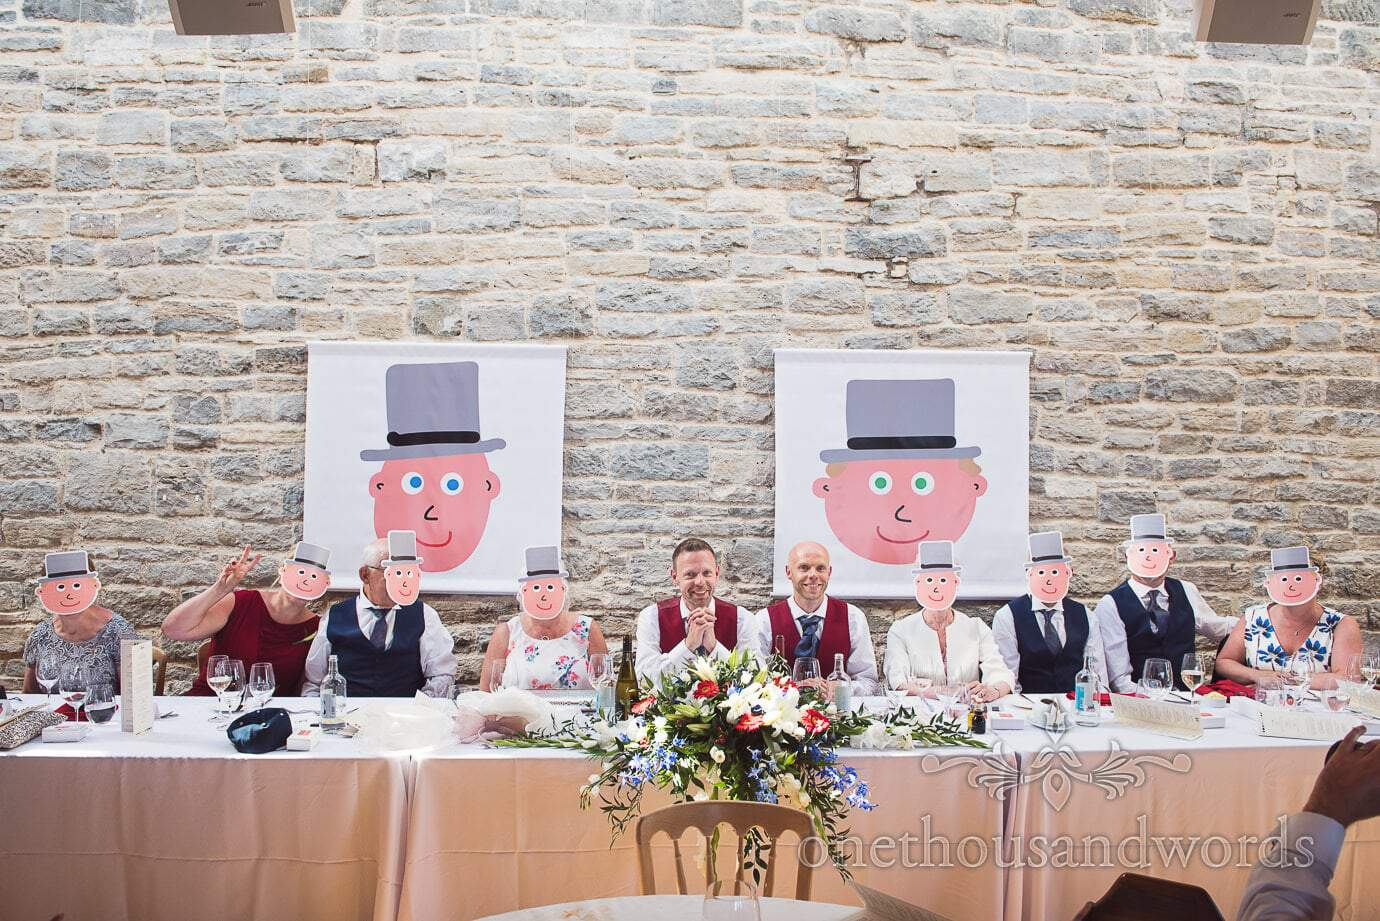 Wedding top table wearing cartoon groom masks at gay wedding in Swanage, Dorset